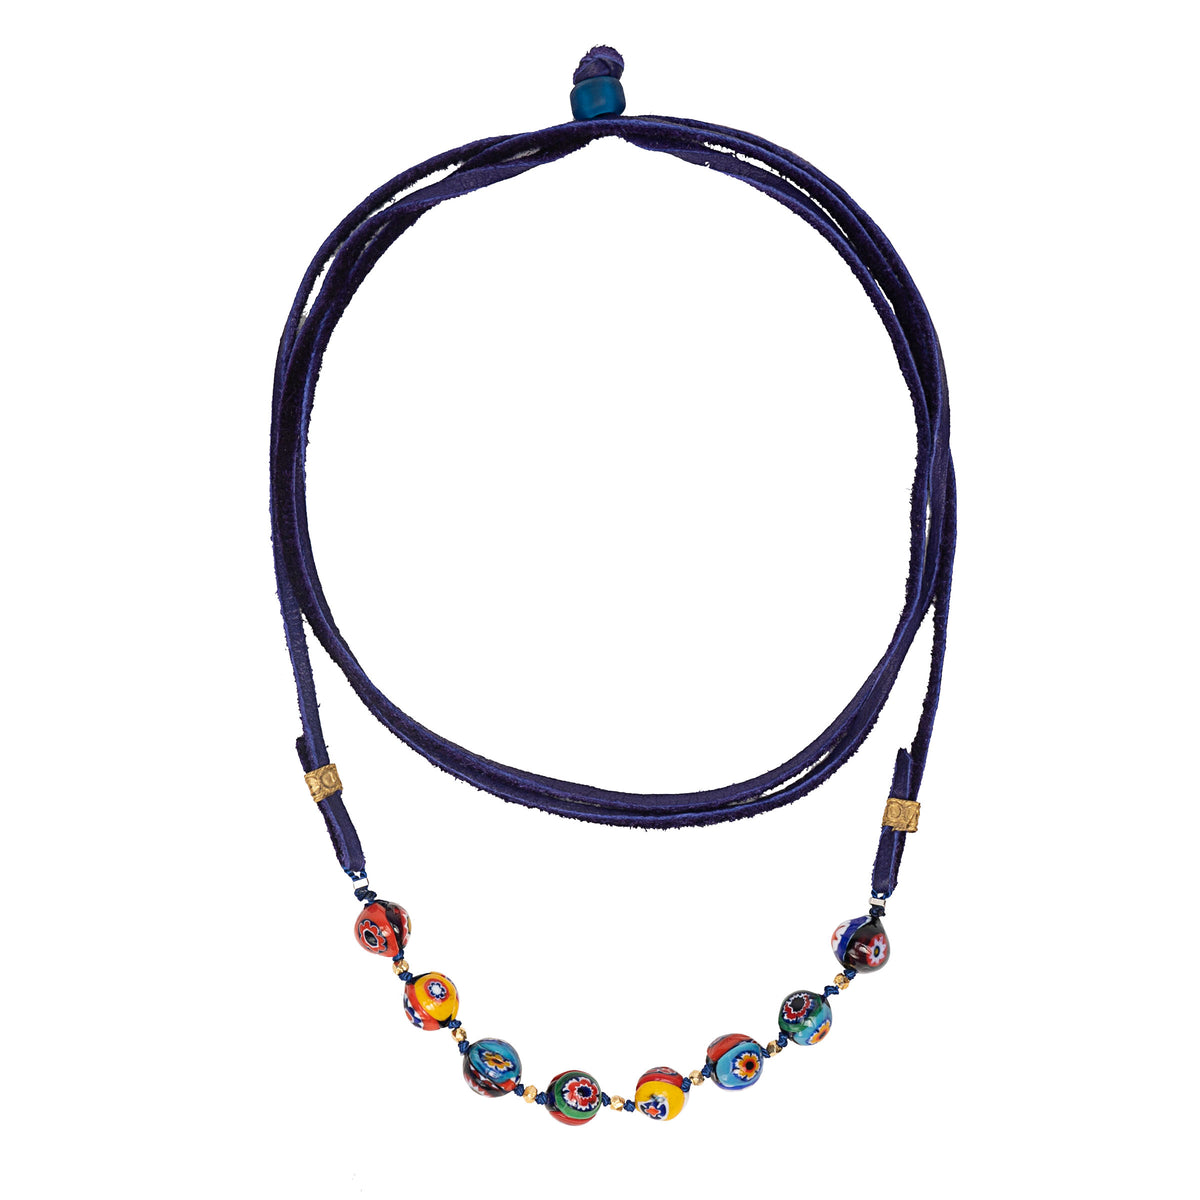 Wanderlust Murano Millefiori glass wrap bracelet and necklace (Murano)